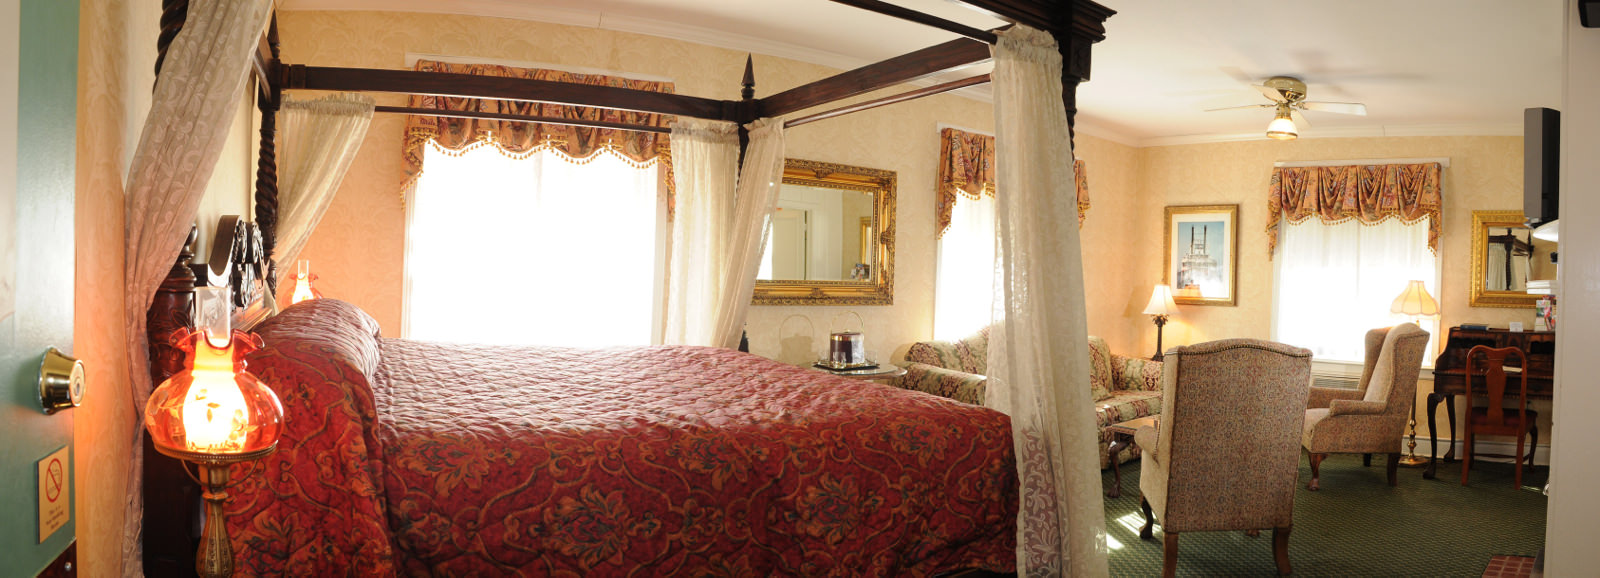 9) Room 348 different angle.jpg